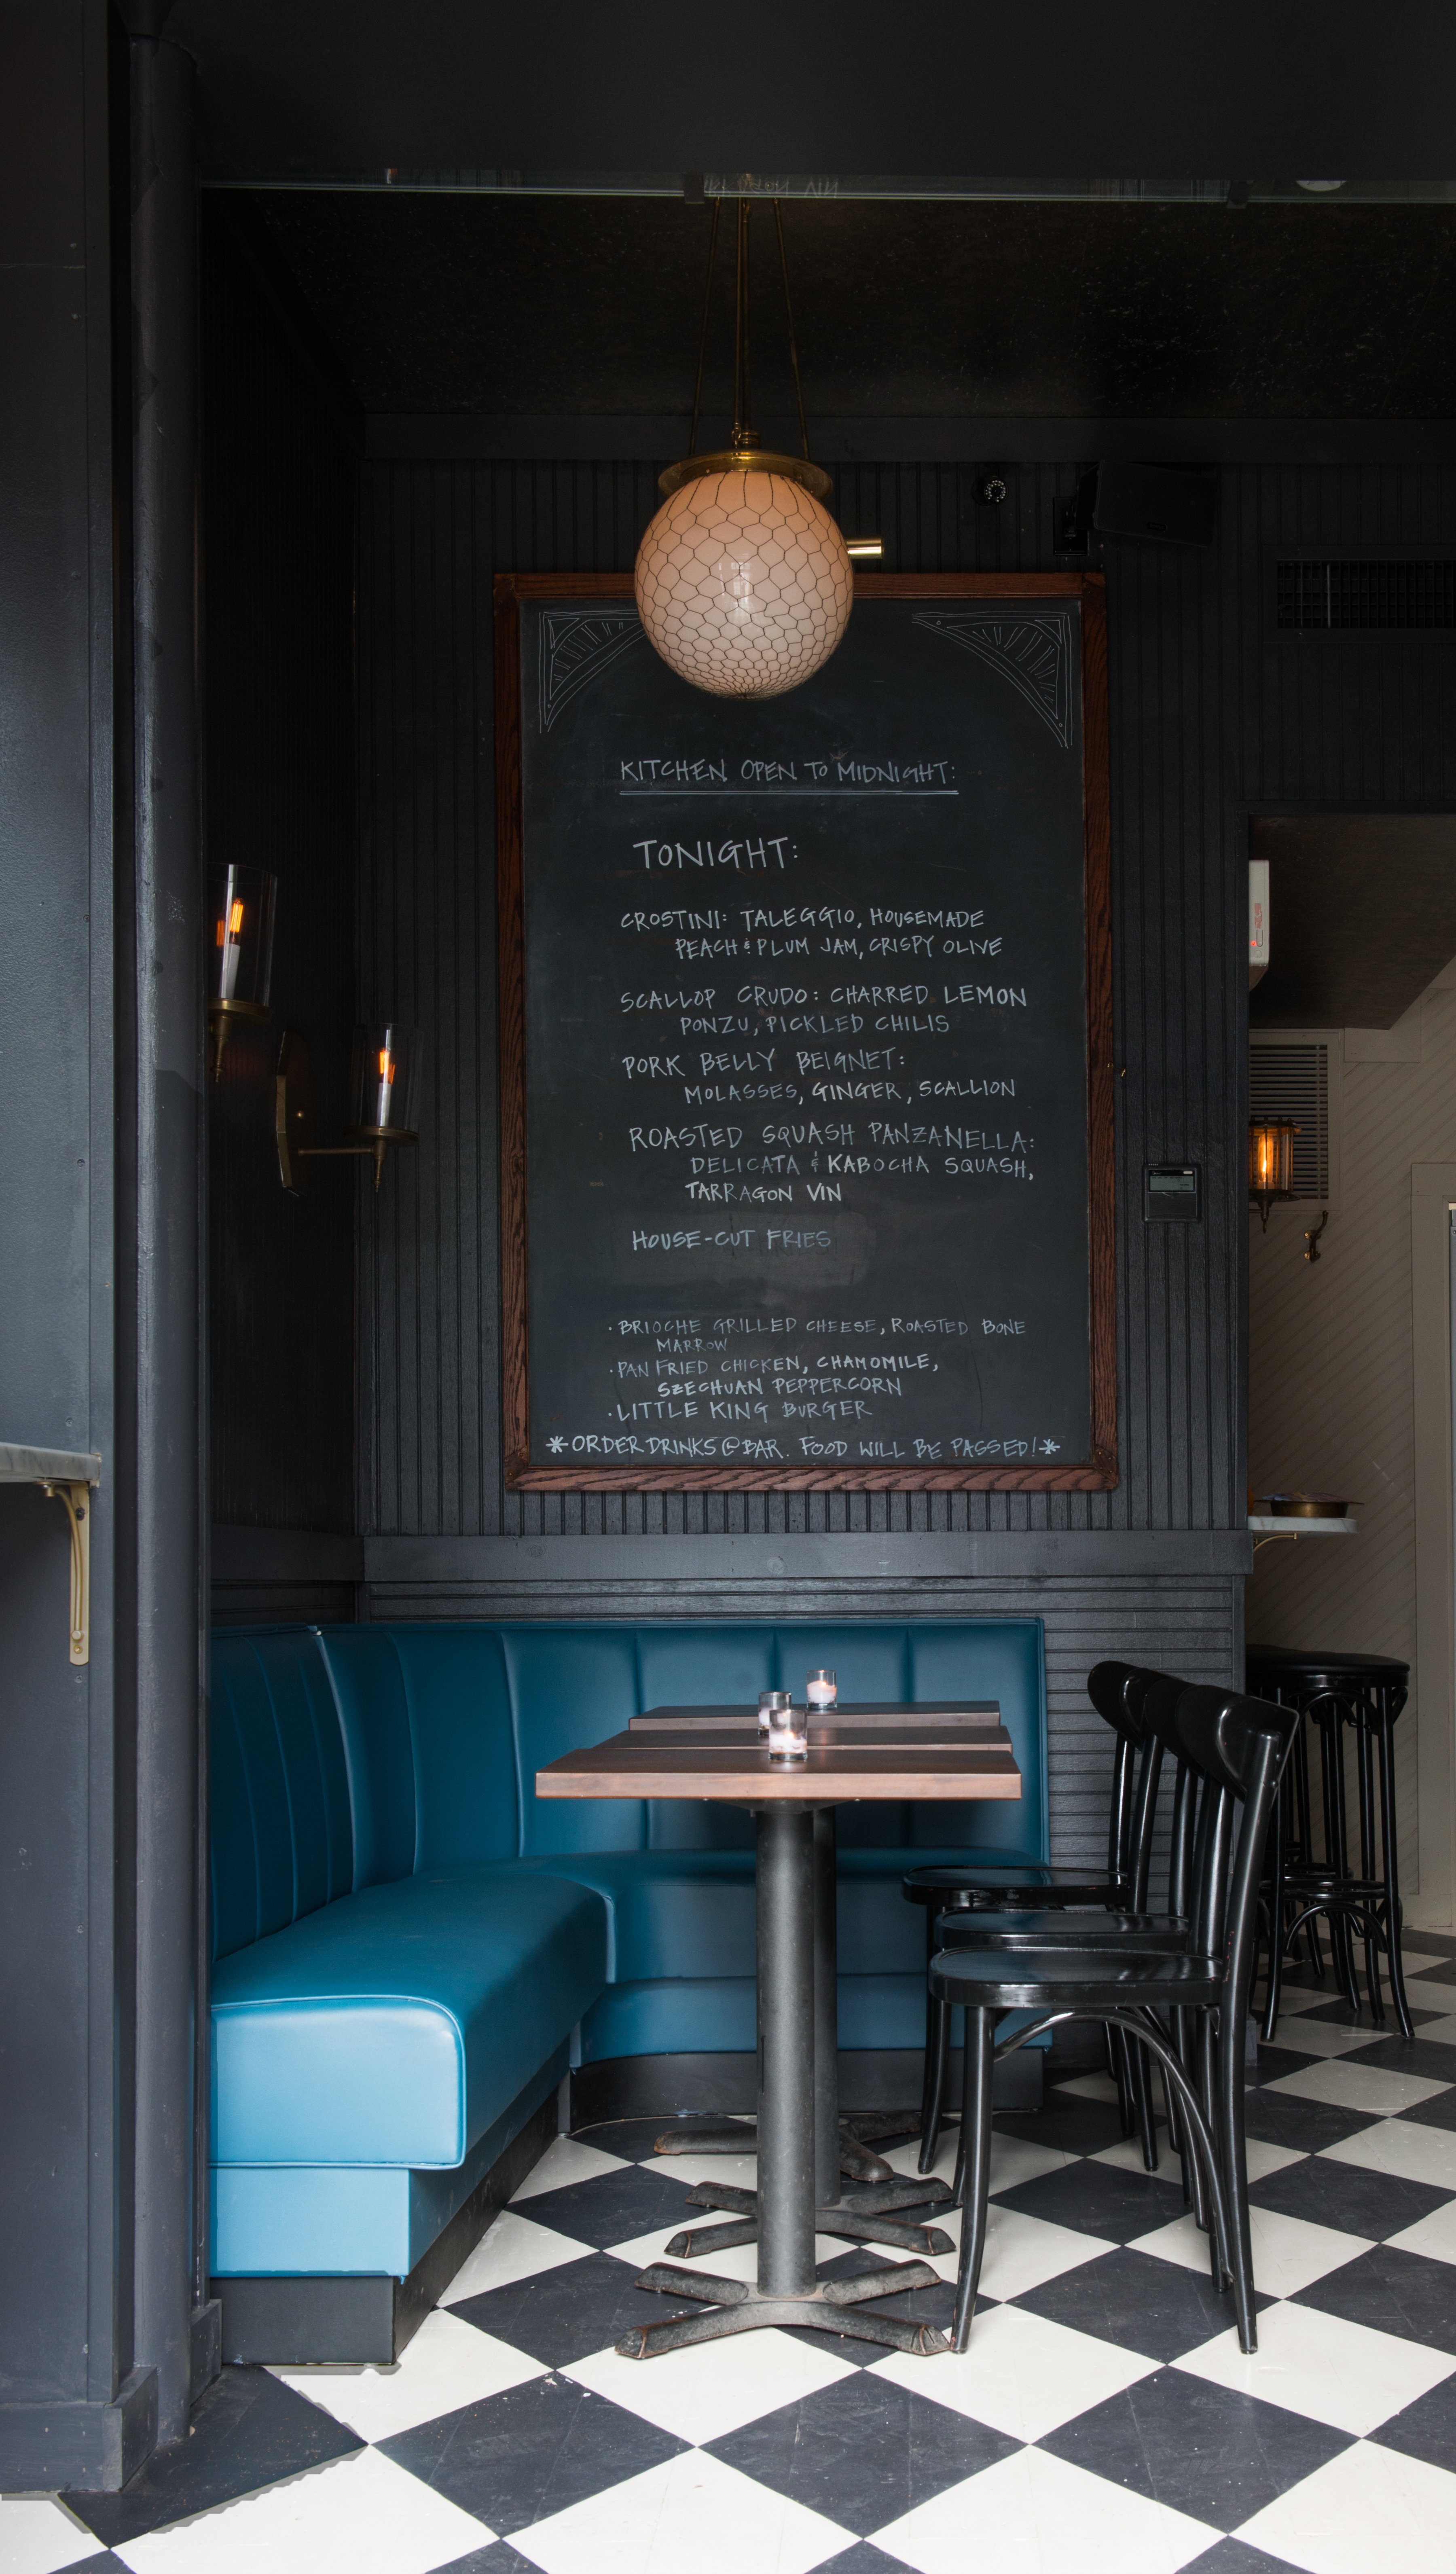 Neighborhood atmosphere achieved via a smoky color palette, touches of blue, and vintage details.